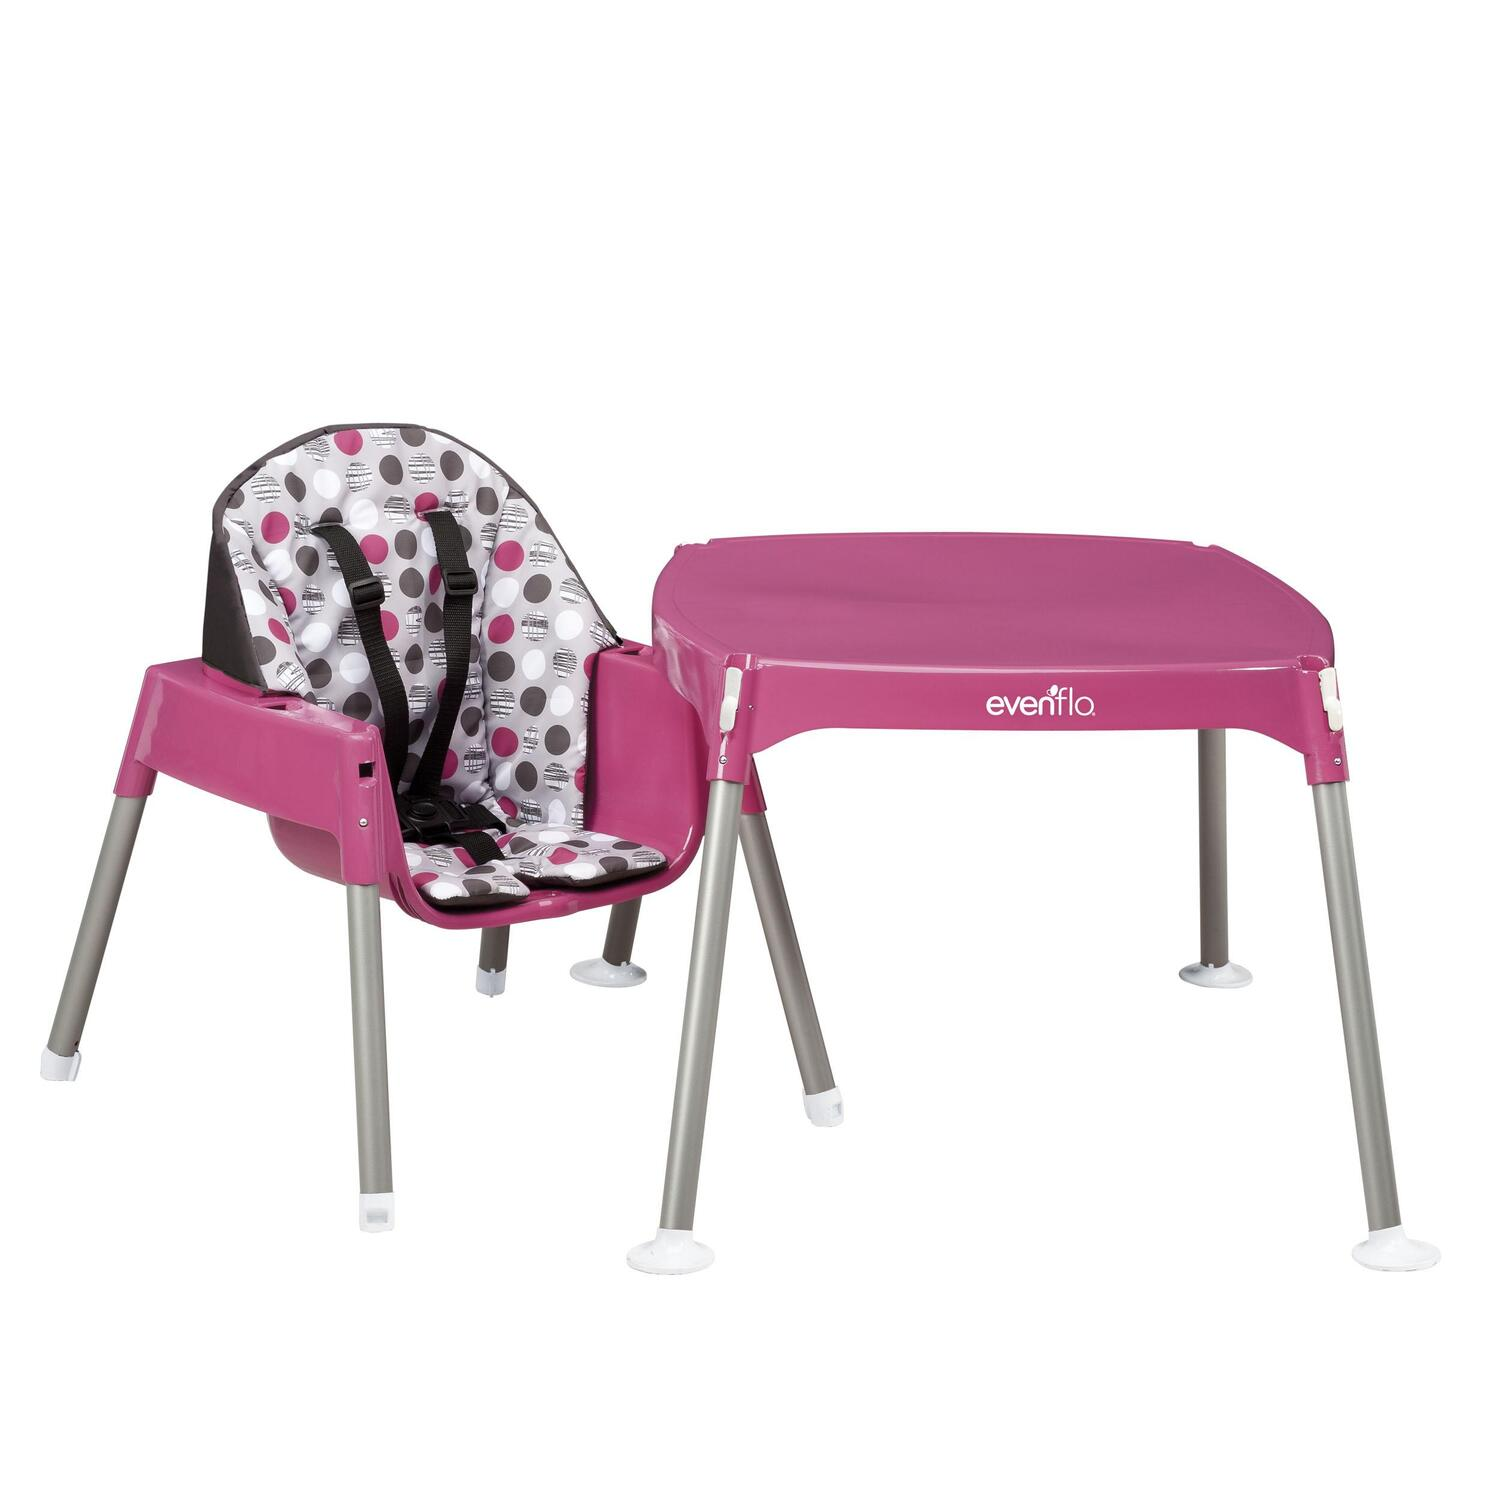 evenflo compact high chair sears chairs and recliners convertible 3 in 1 by oj commerce 53 99